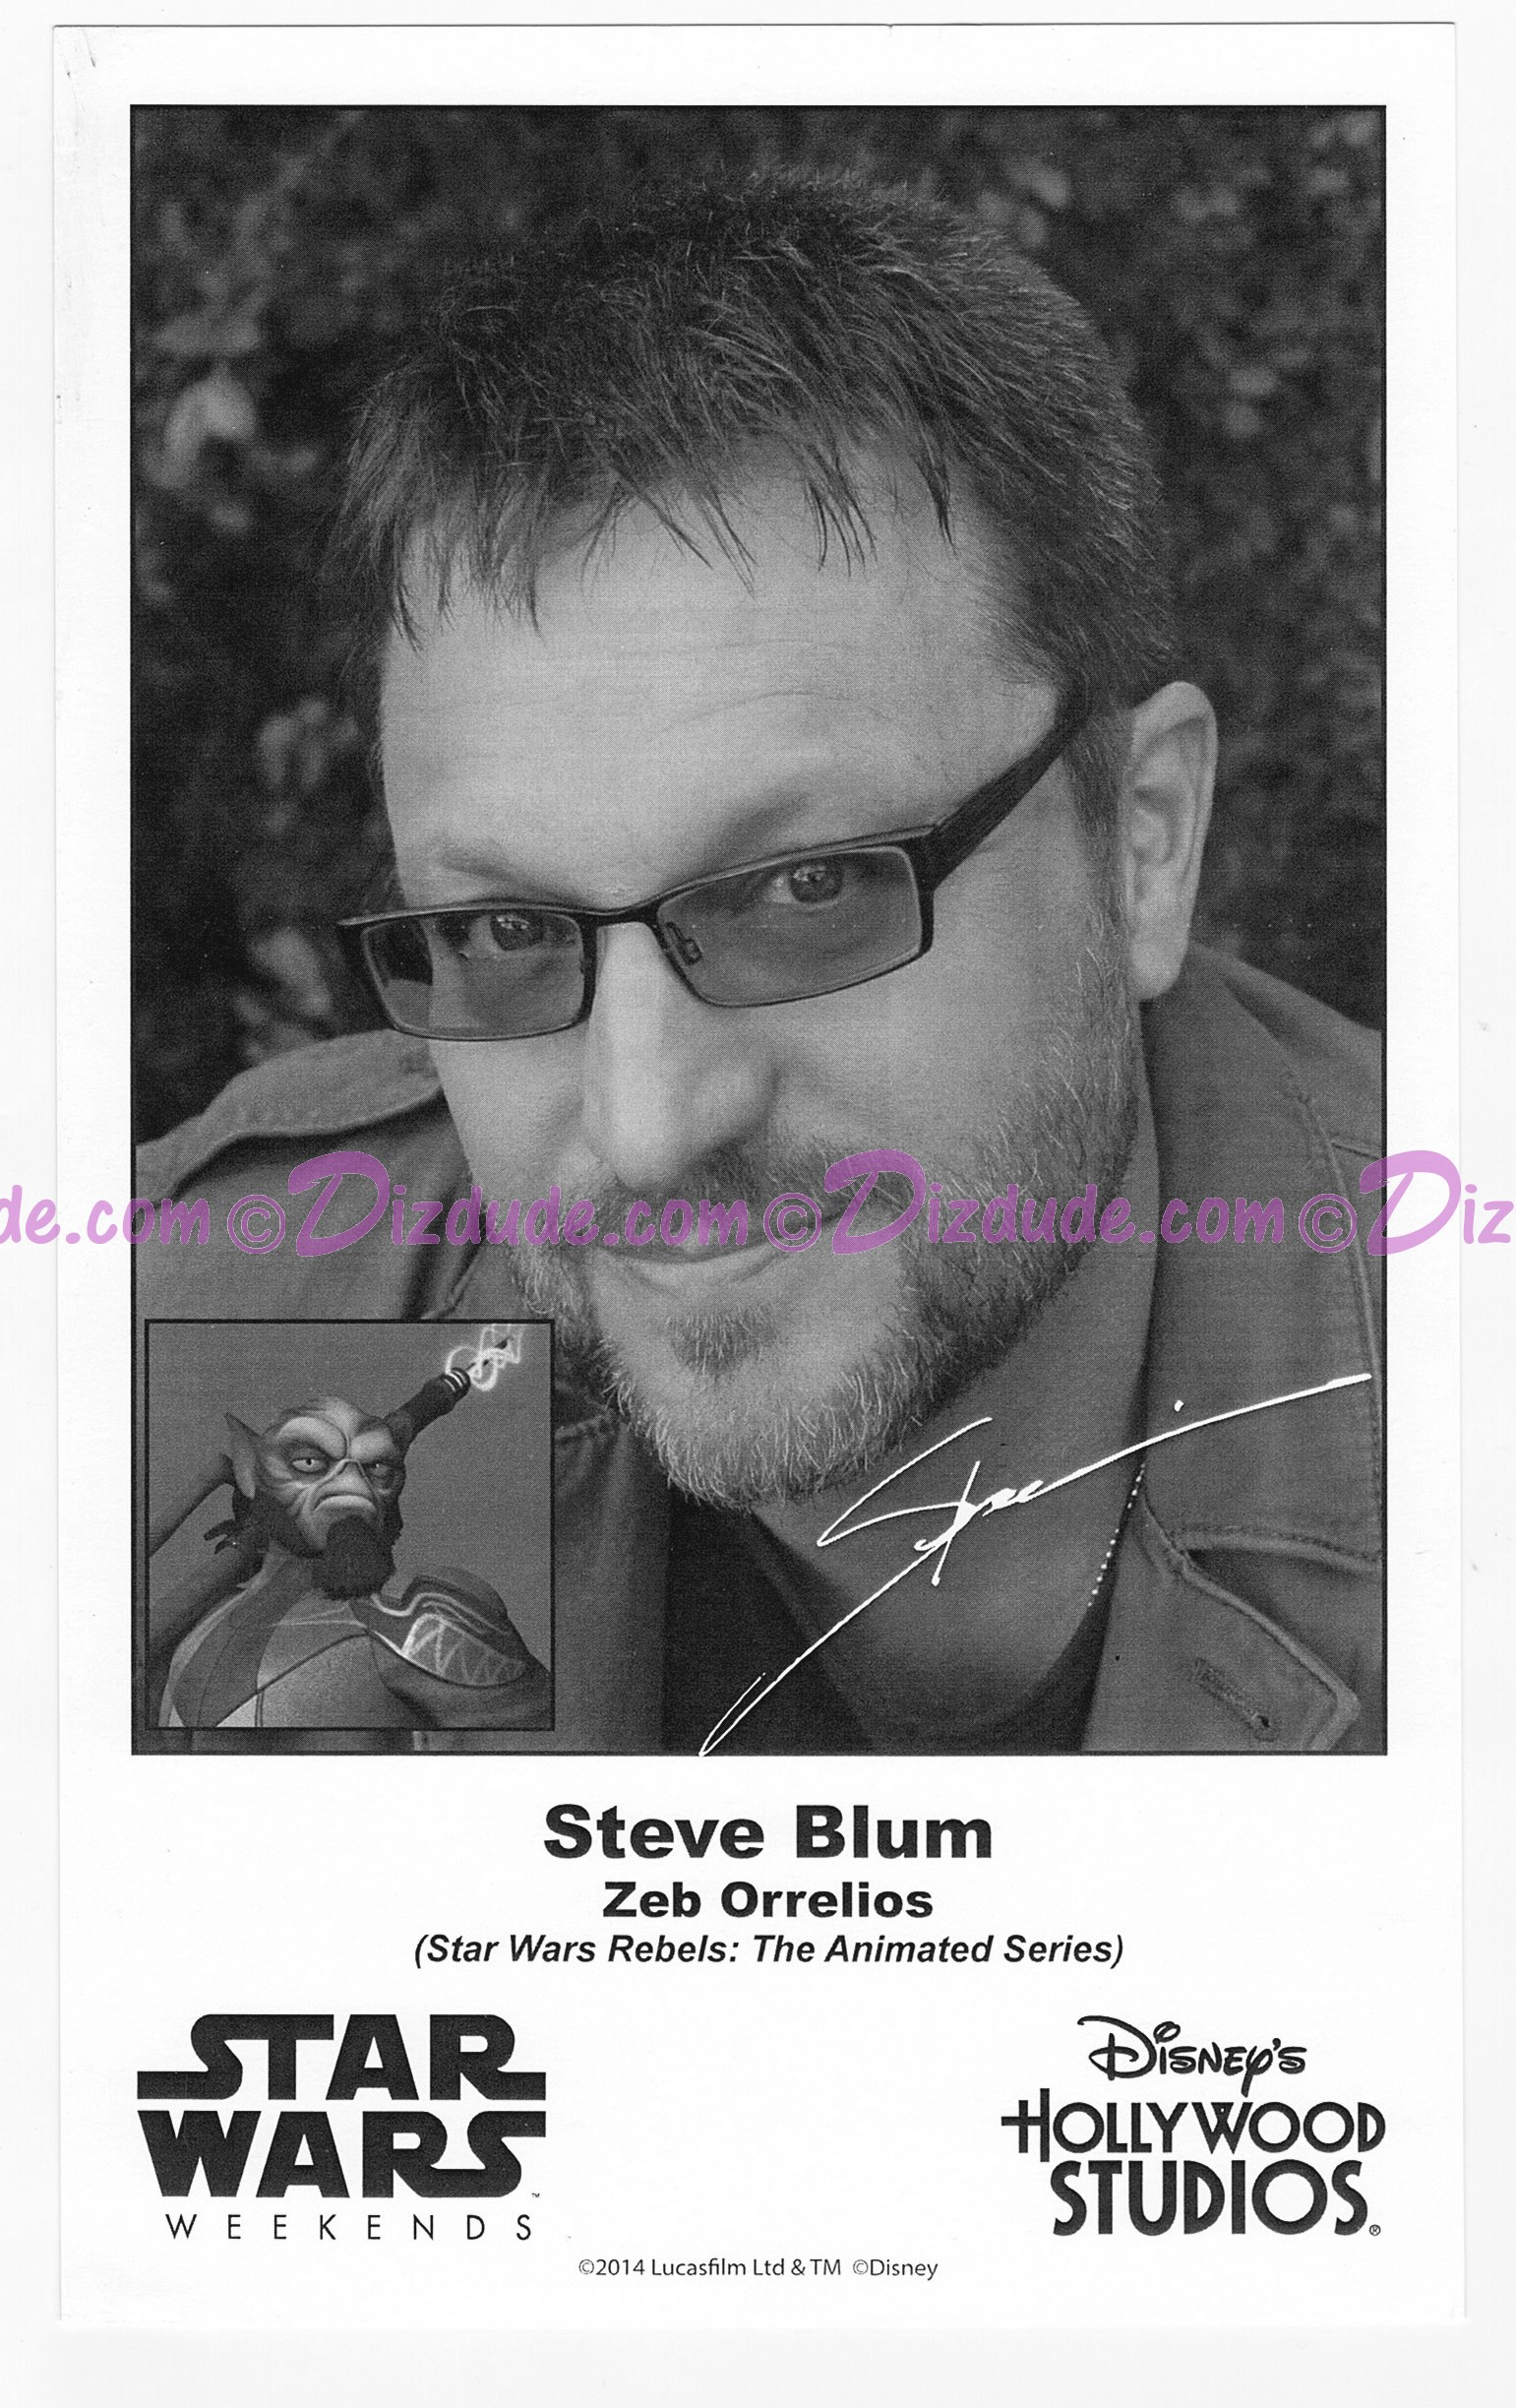 Steve Blum the voice of Garazeb ZEB Orrelios Presigned Official Star Wars Weekends 2014 Celebrity Collector Photo